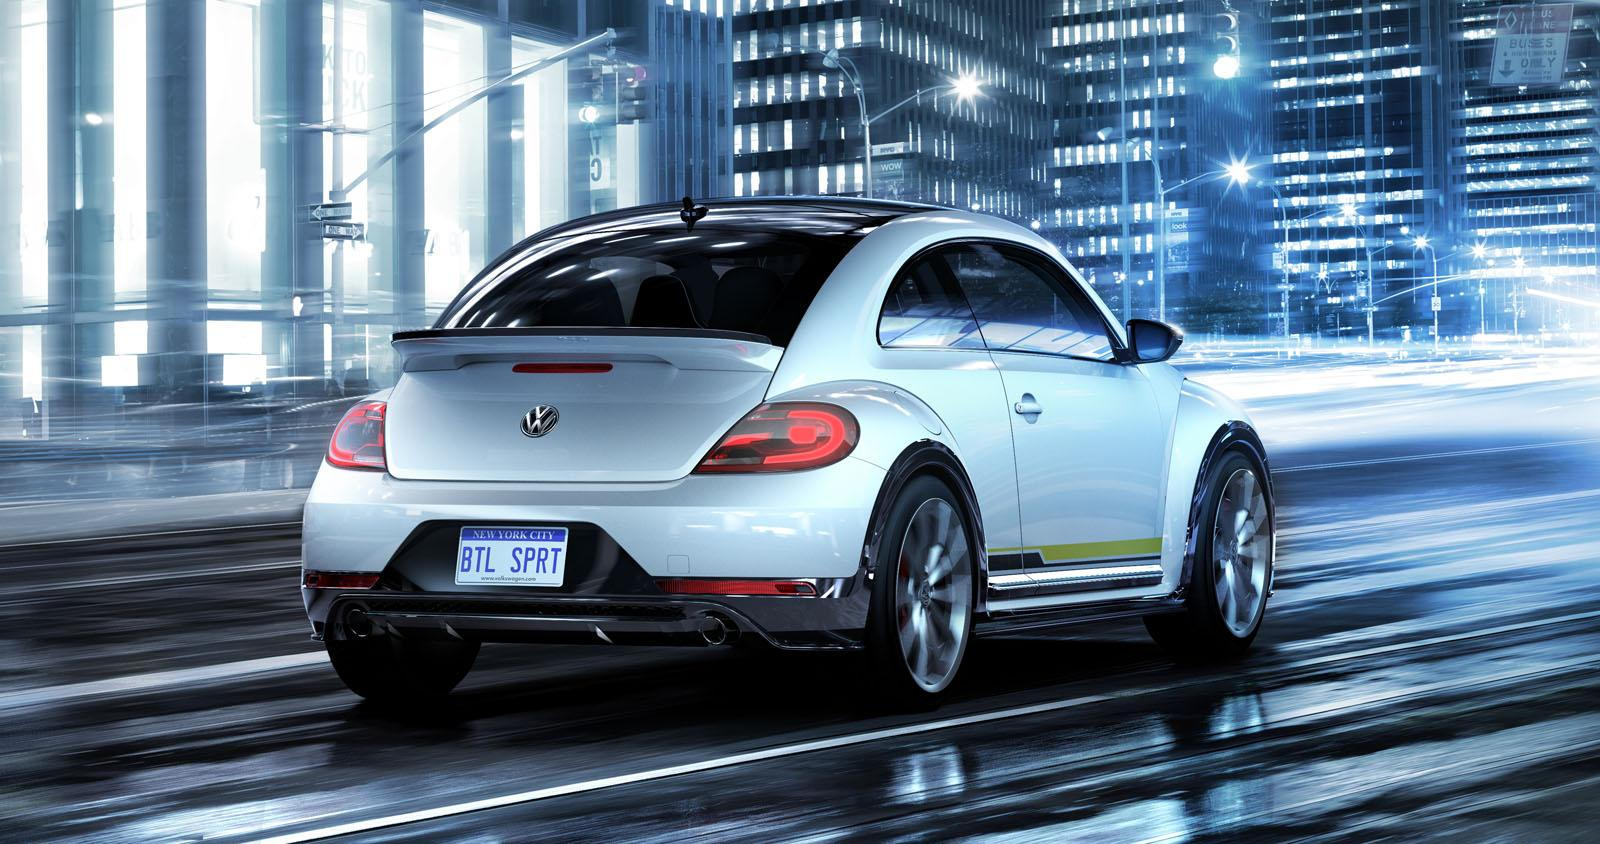 New York: Volkswagen Confirms Beetle Dune Production in 2016, Shows 4 New Concepts - autoevolution